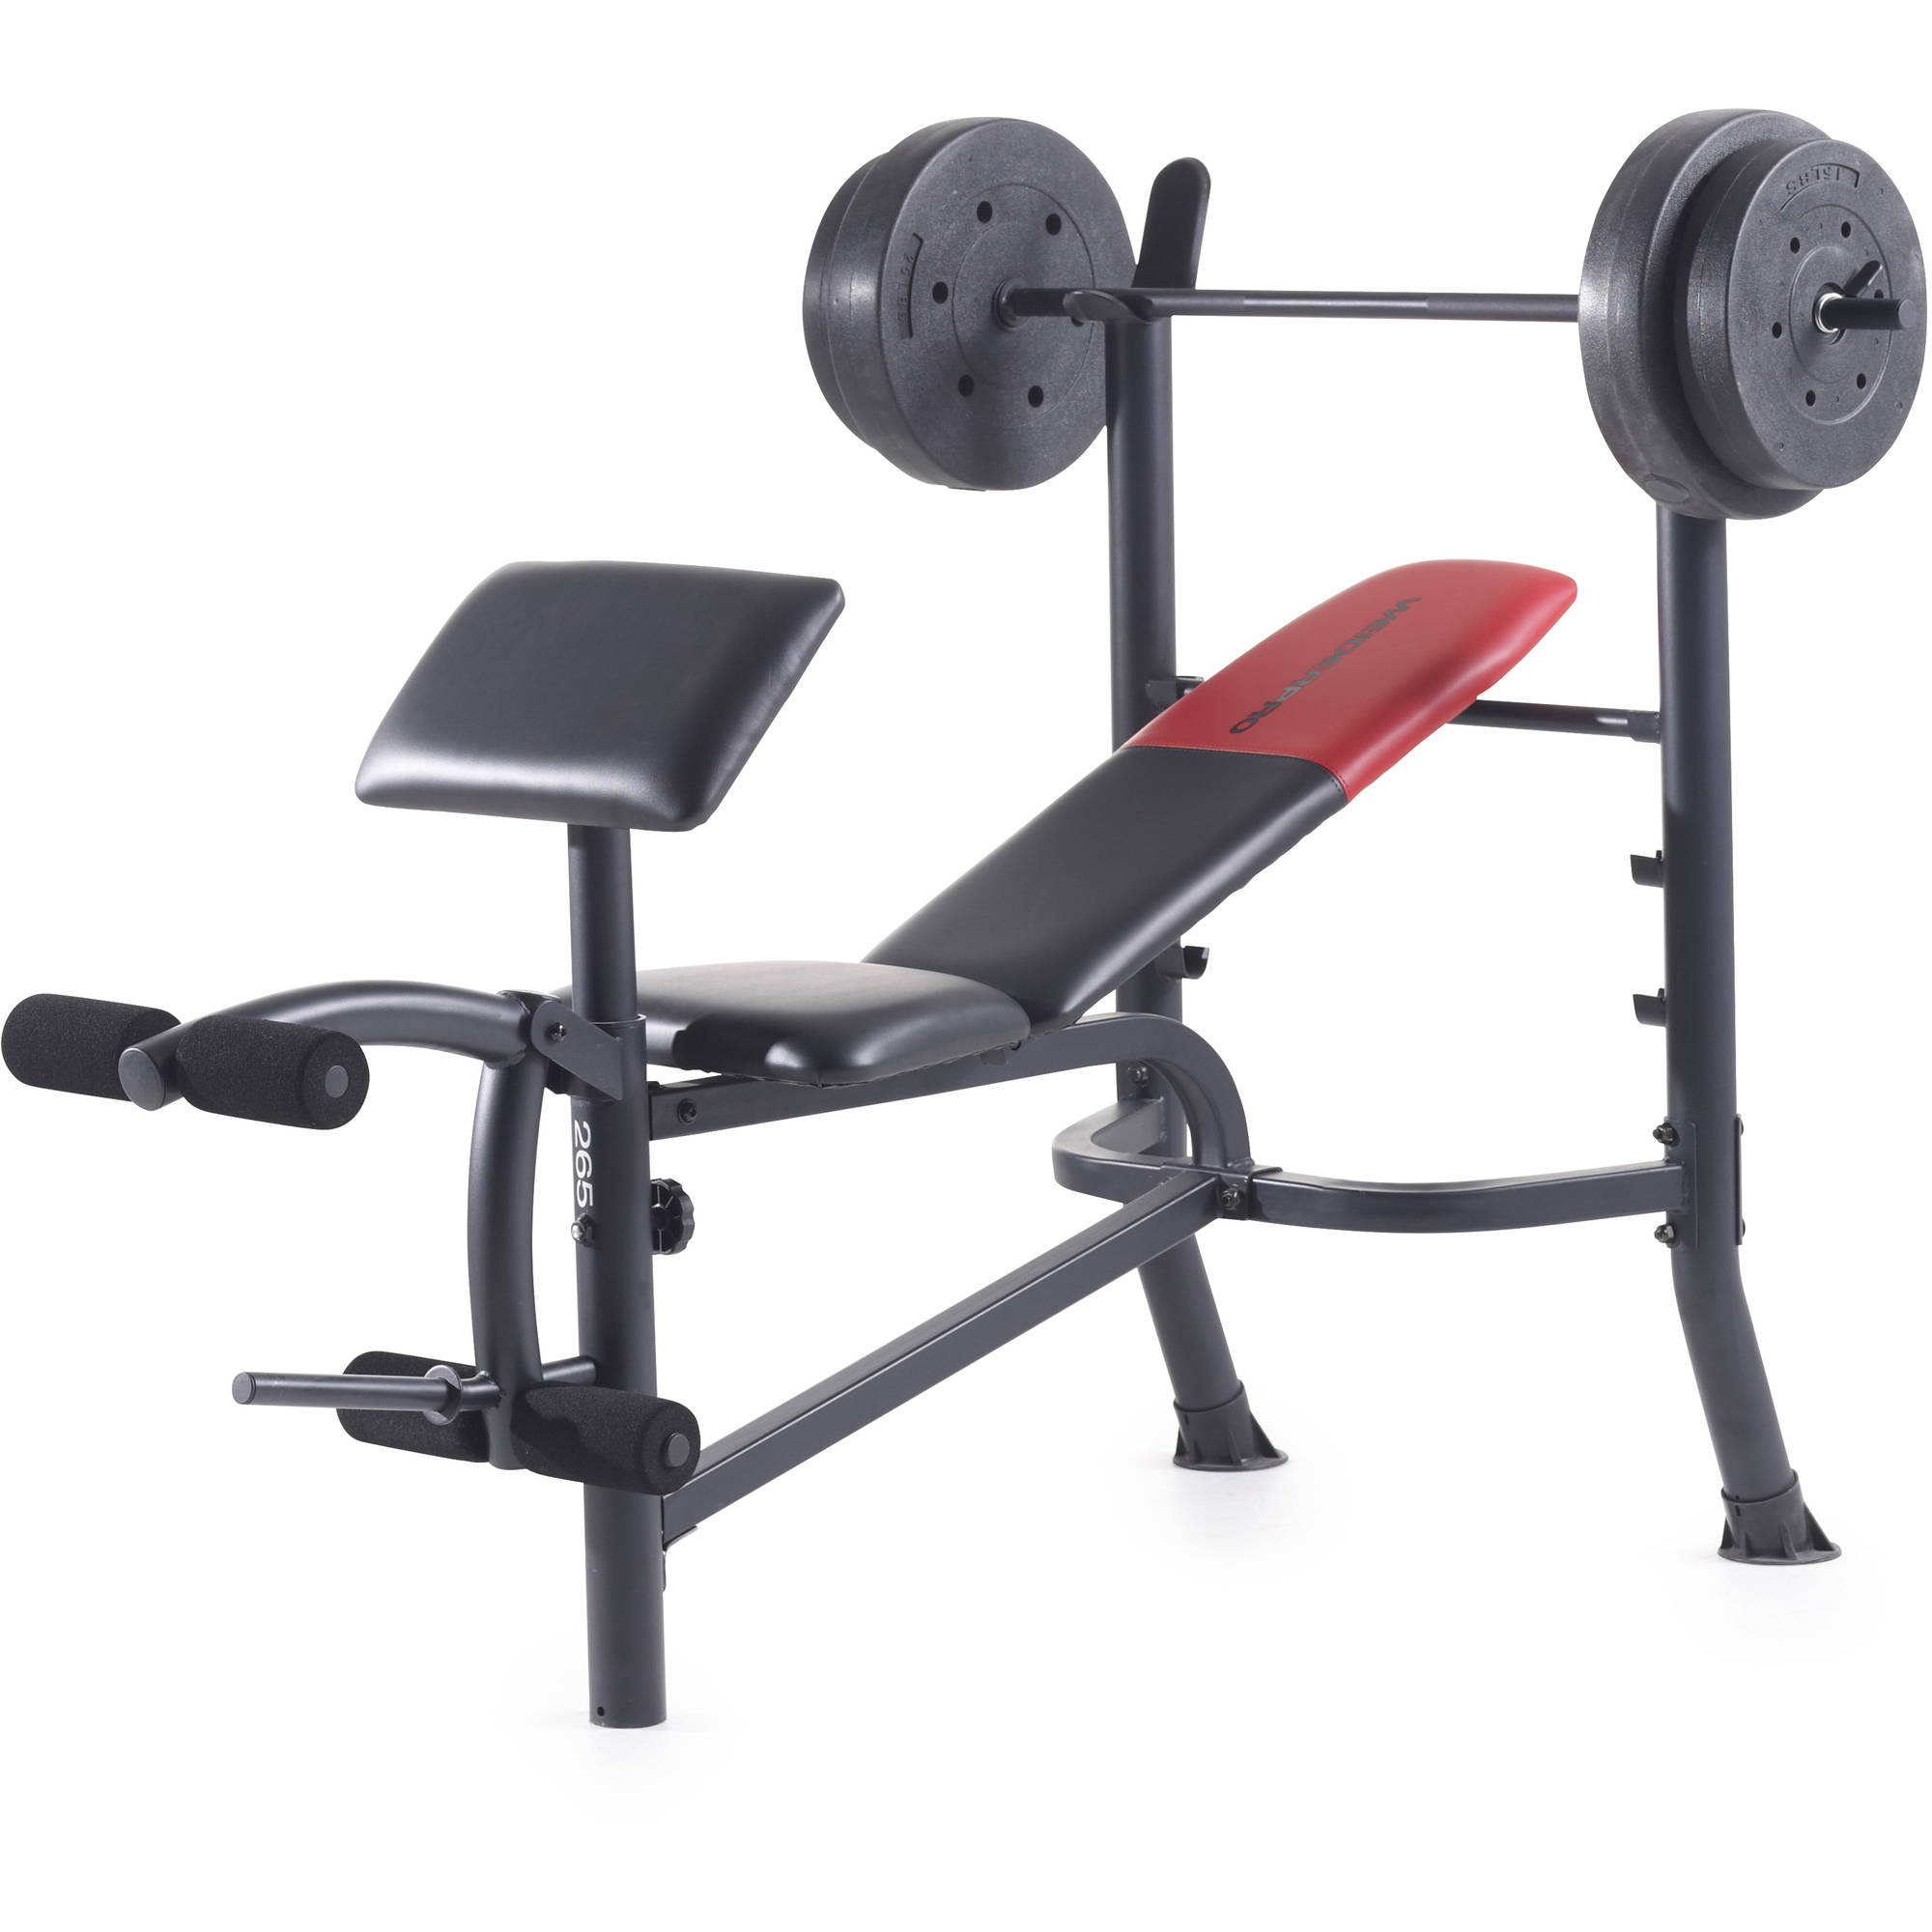 bar chest press weights and plate bench commercial weight rack